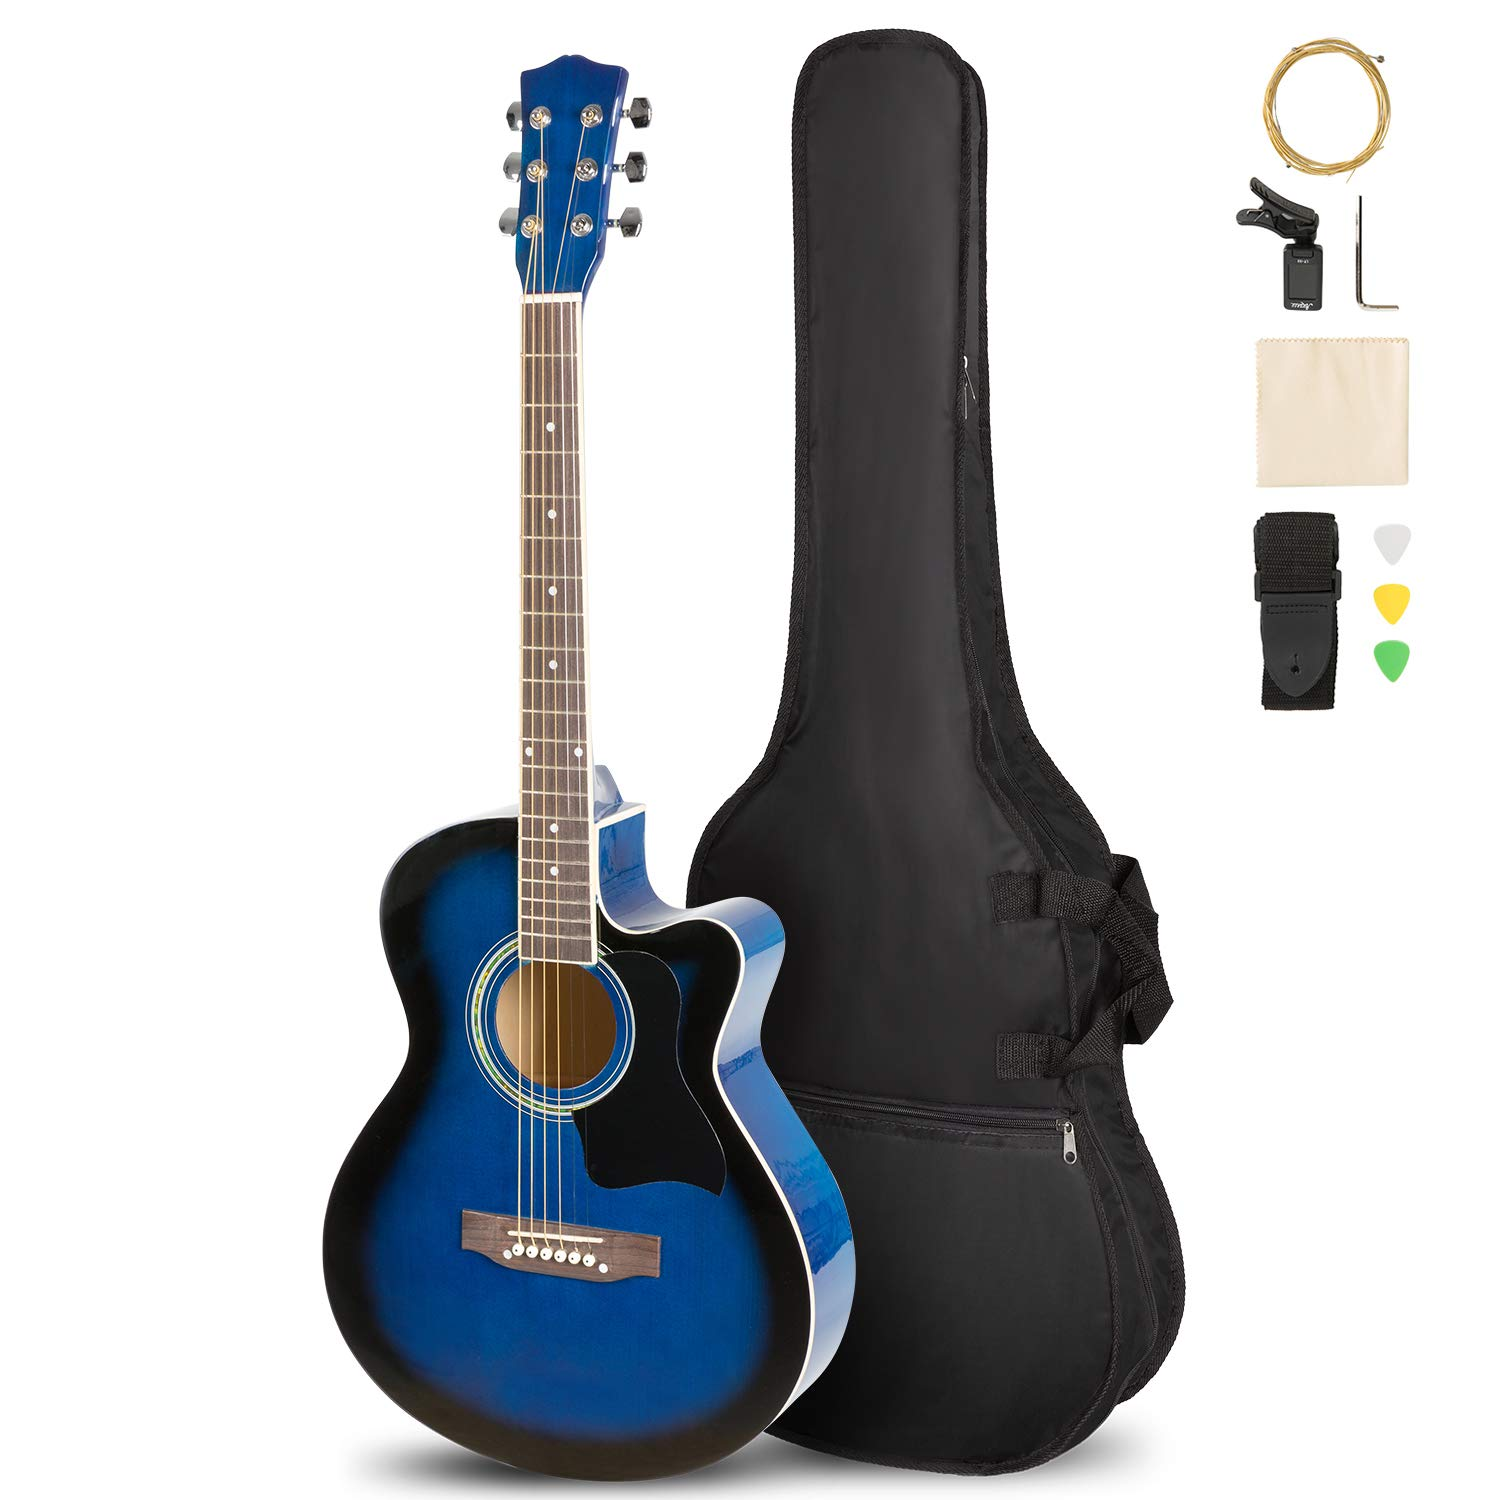 ARTALL 39 Inch Handmade Solid Wood Acoustic Cutaway Guitar Beginner Kit with Tuner, Strings, Picks, Strap, Glossy Blue by ARTALL